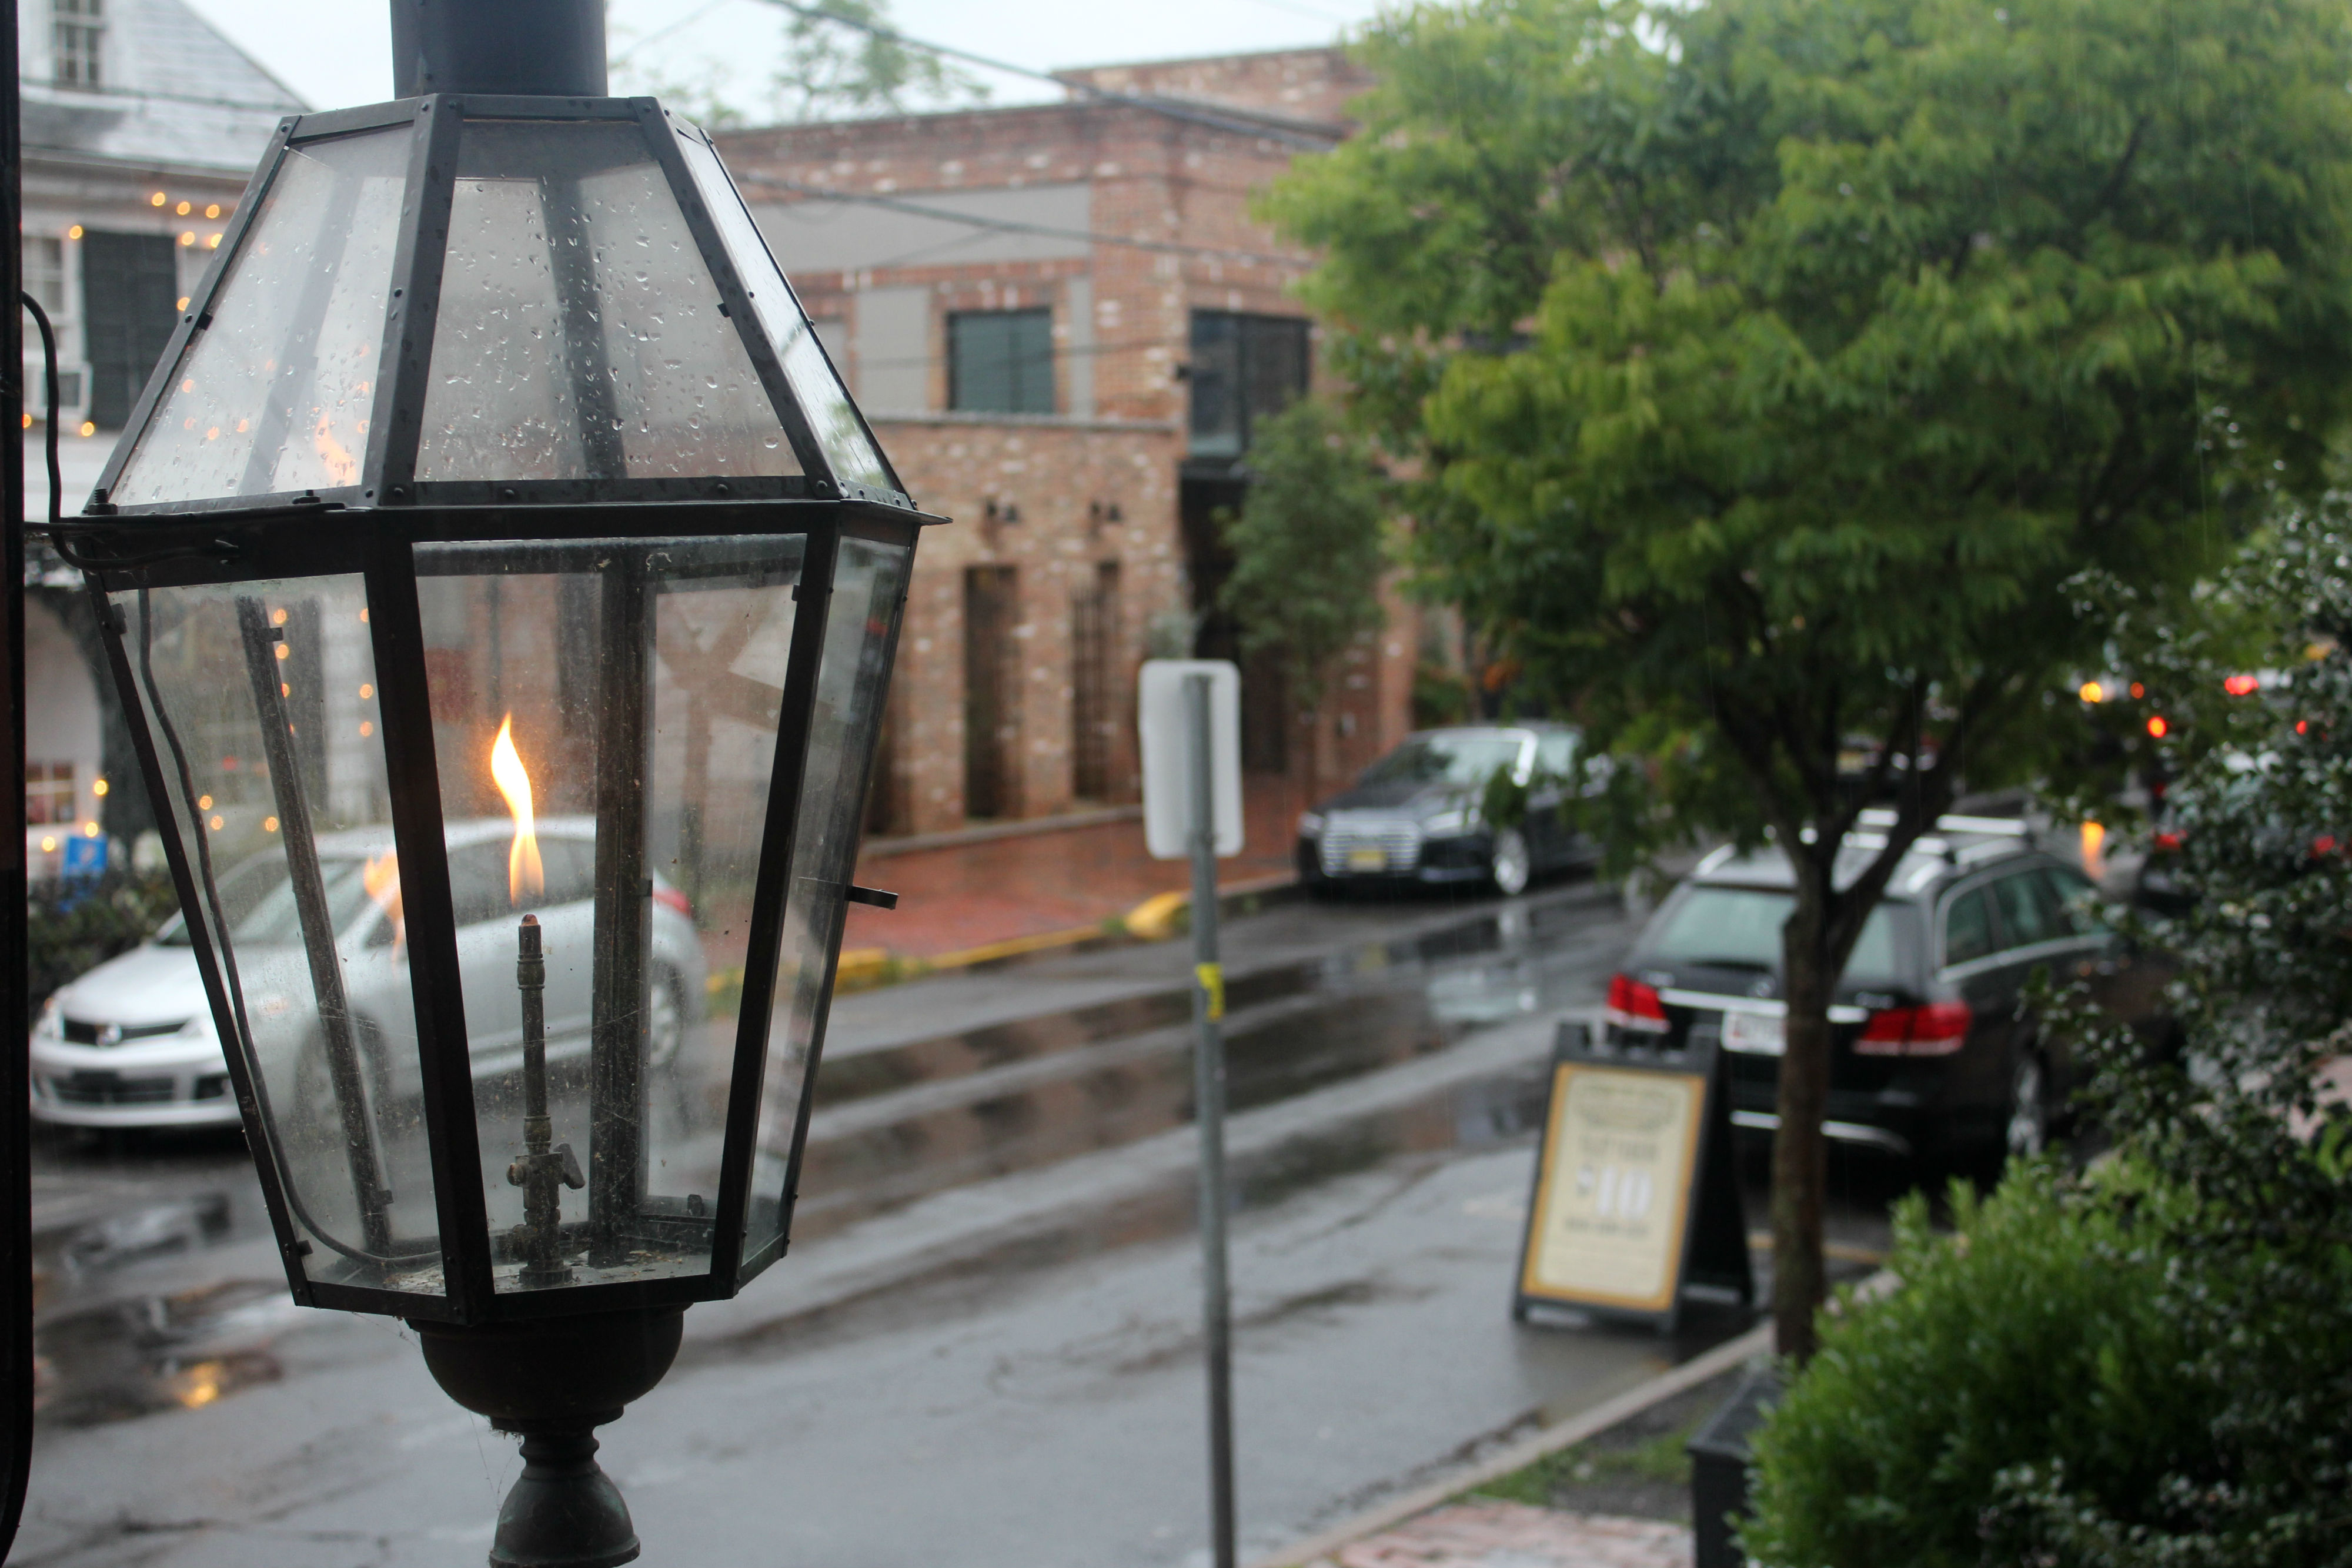 You'll feel like you are stepping back in time in New Hope.{&nbsp;}(Image: Julie Gallagher)<p></p>